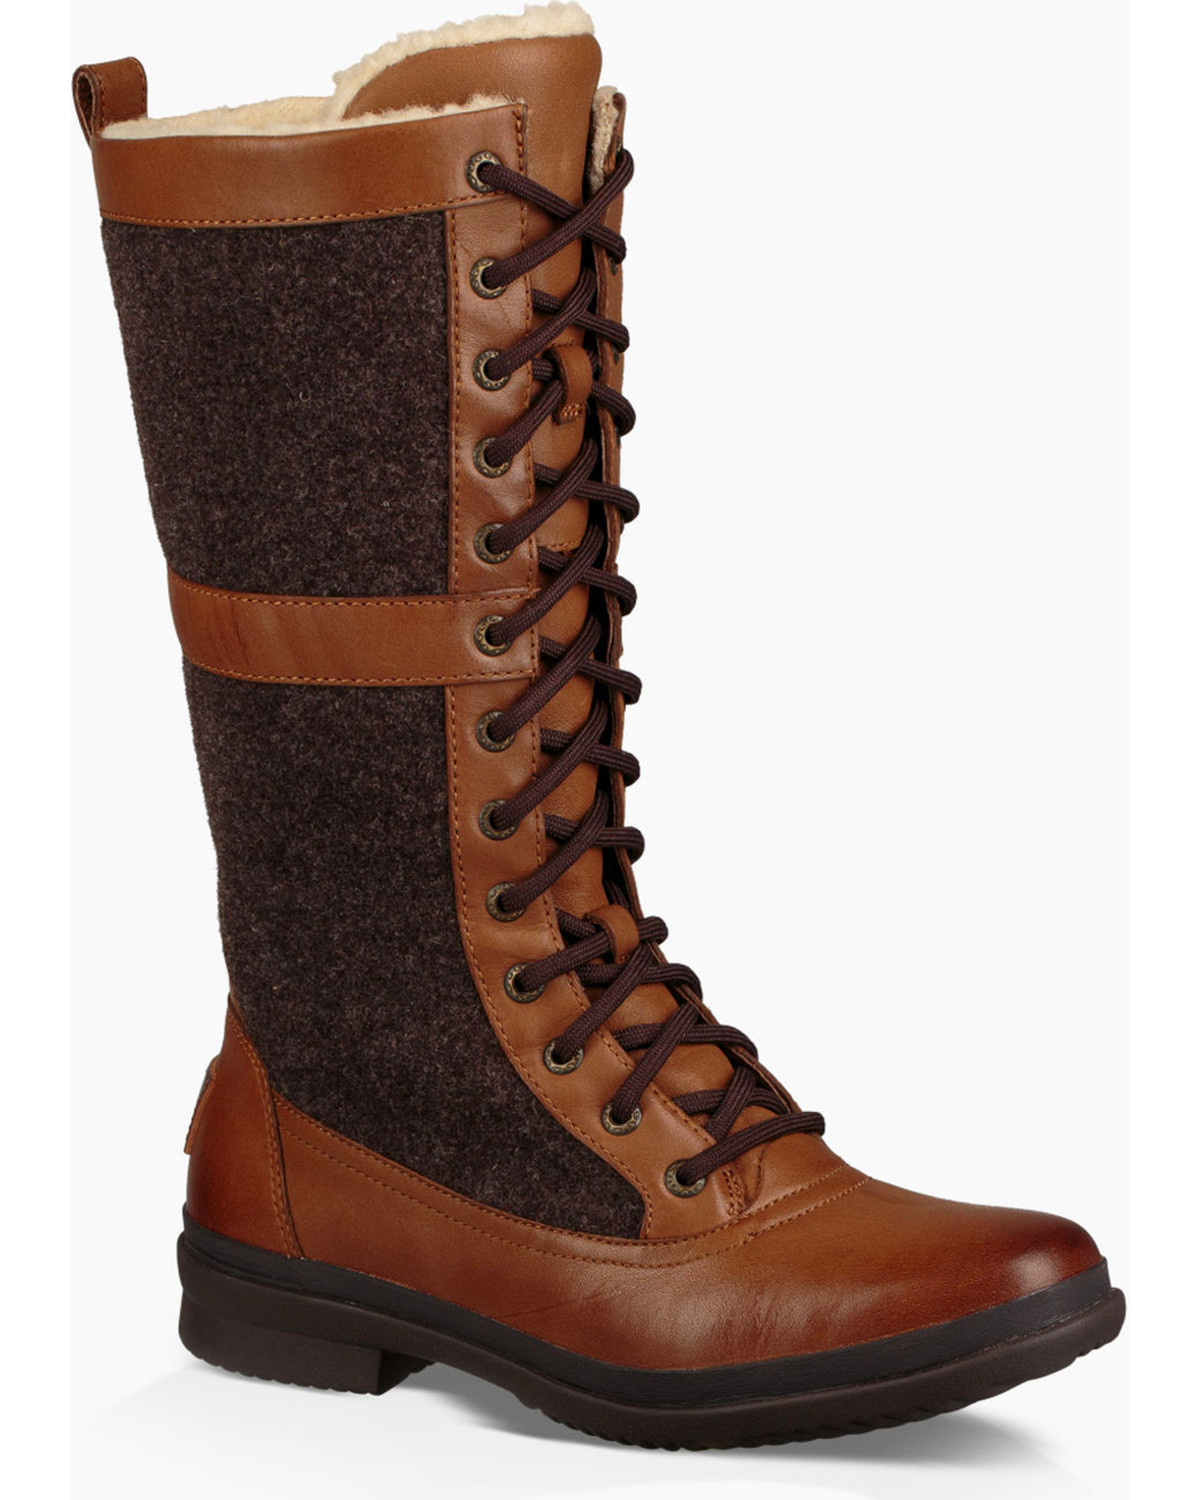 26a13627dba UGG Women's Lace-Up Outdoor Boots